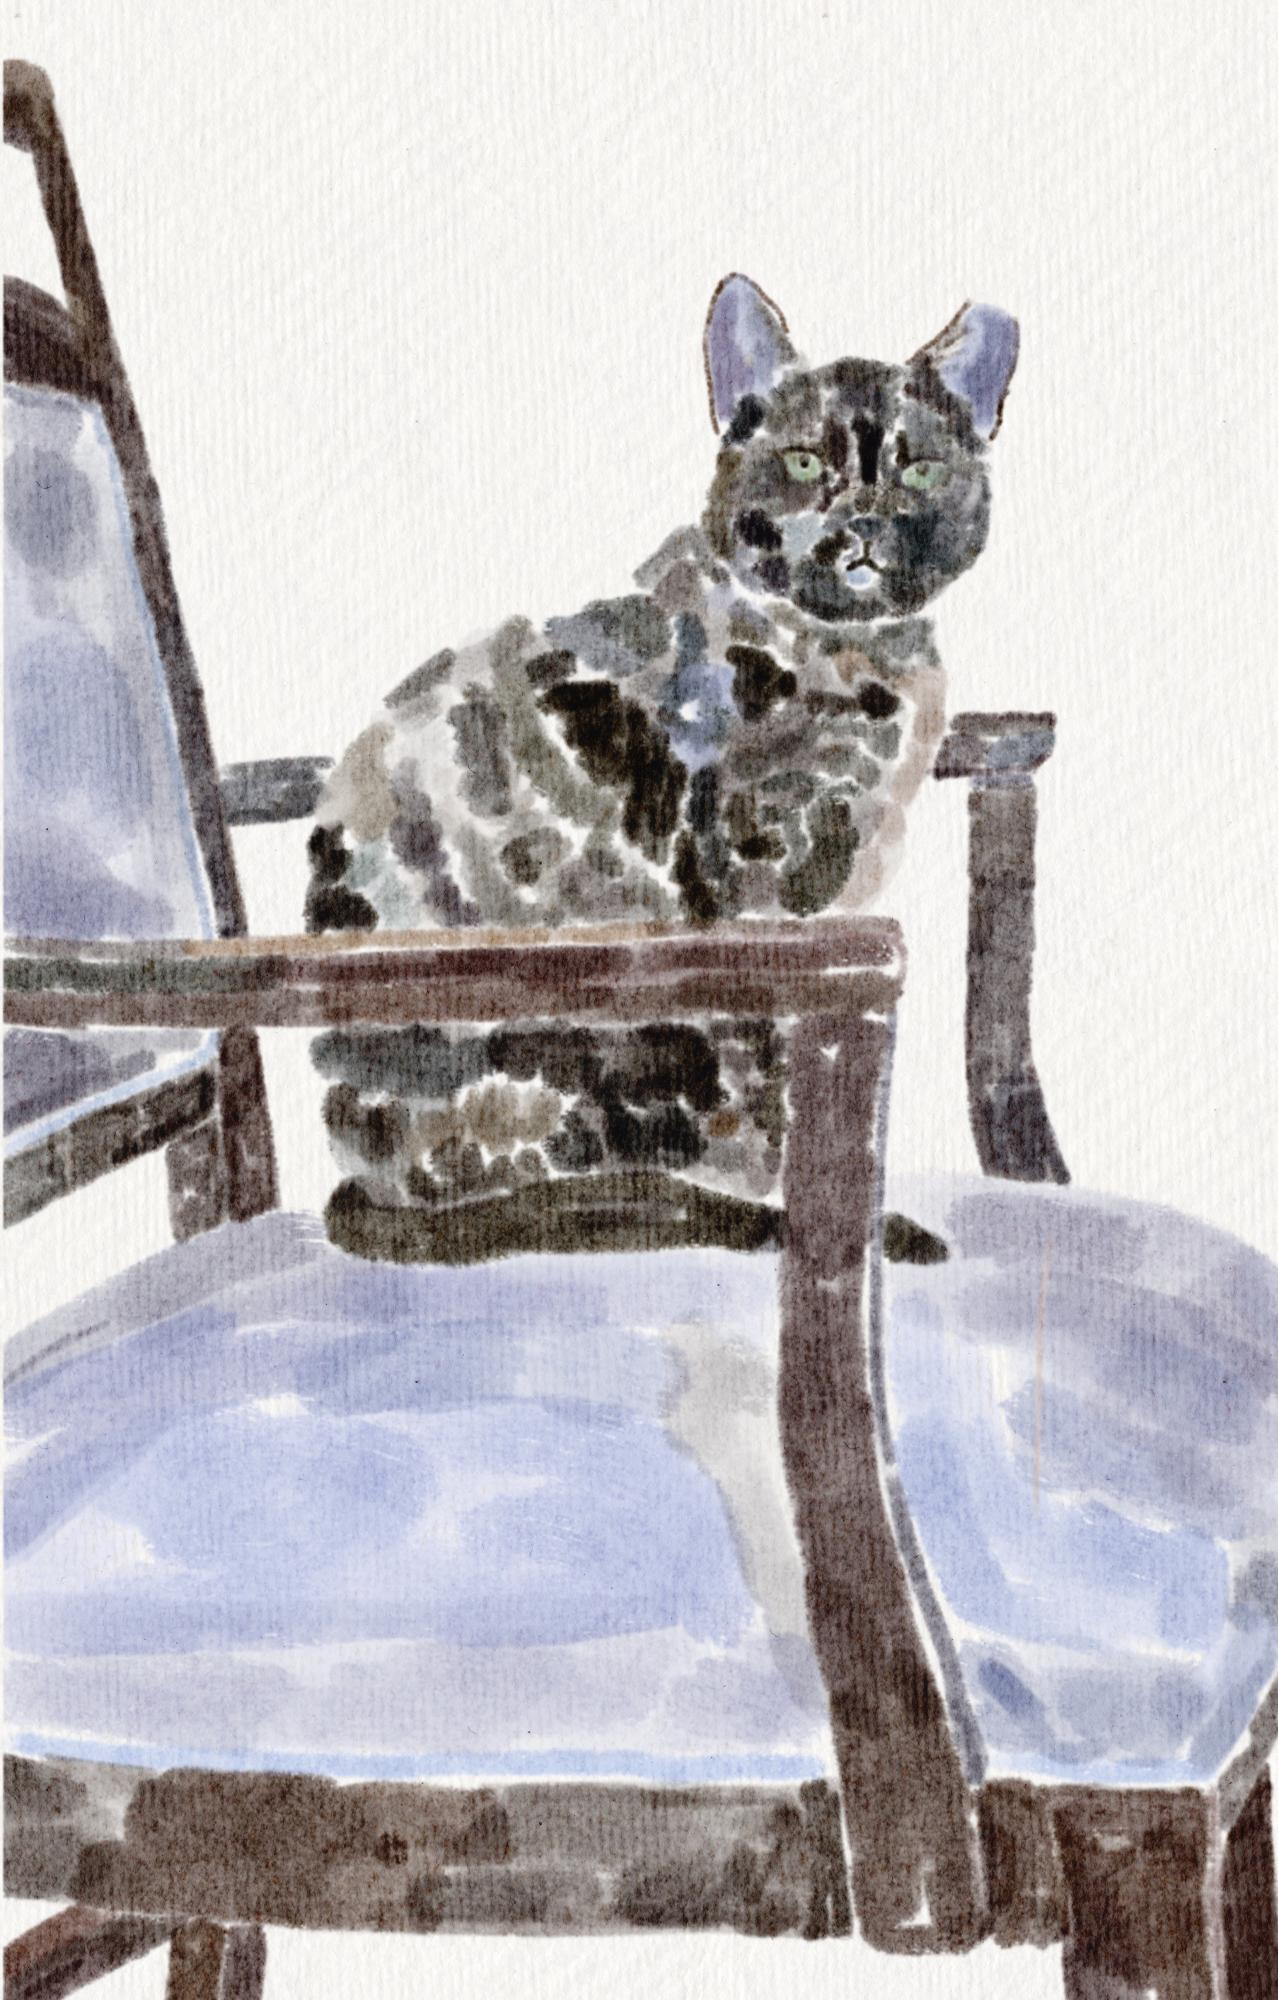 painting of cat in chair